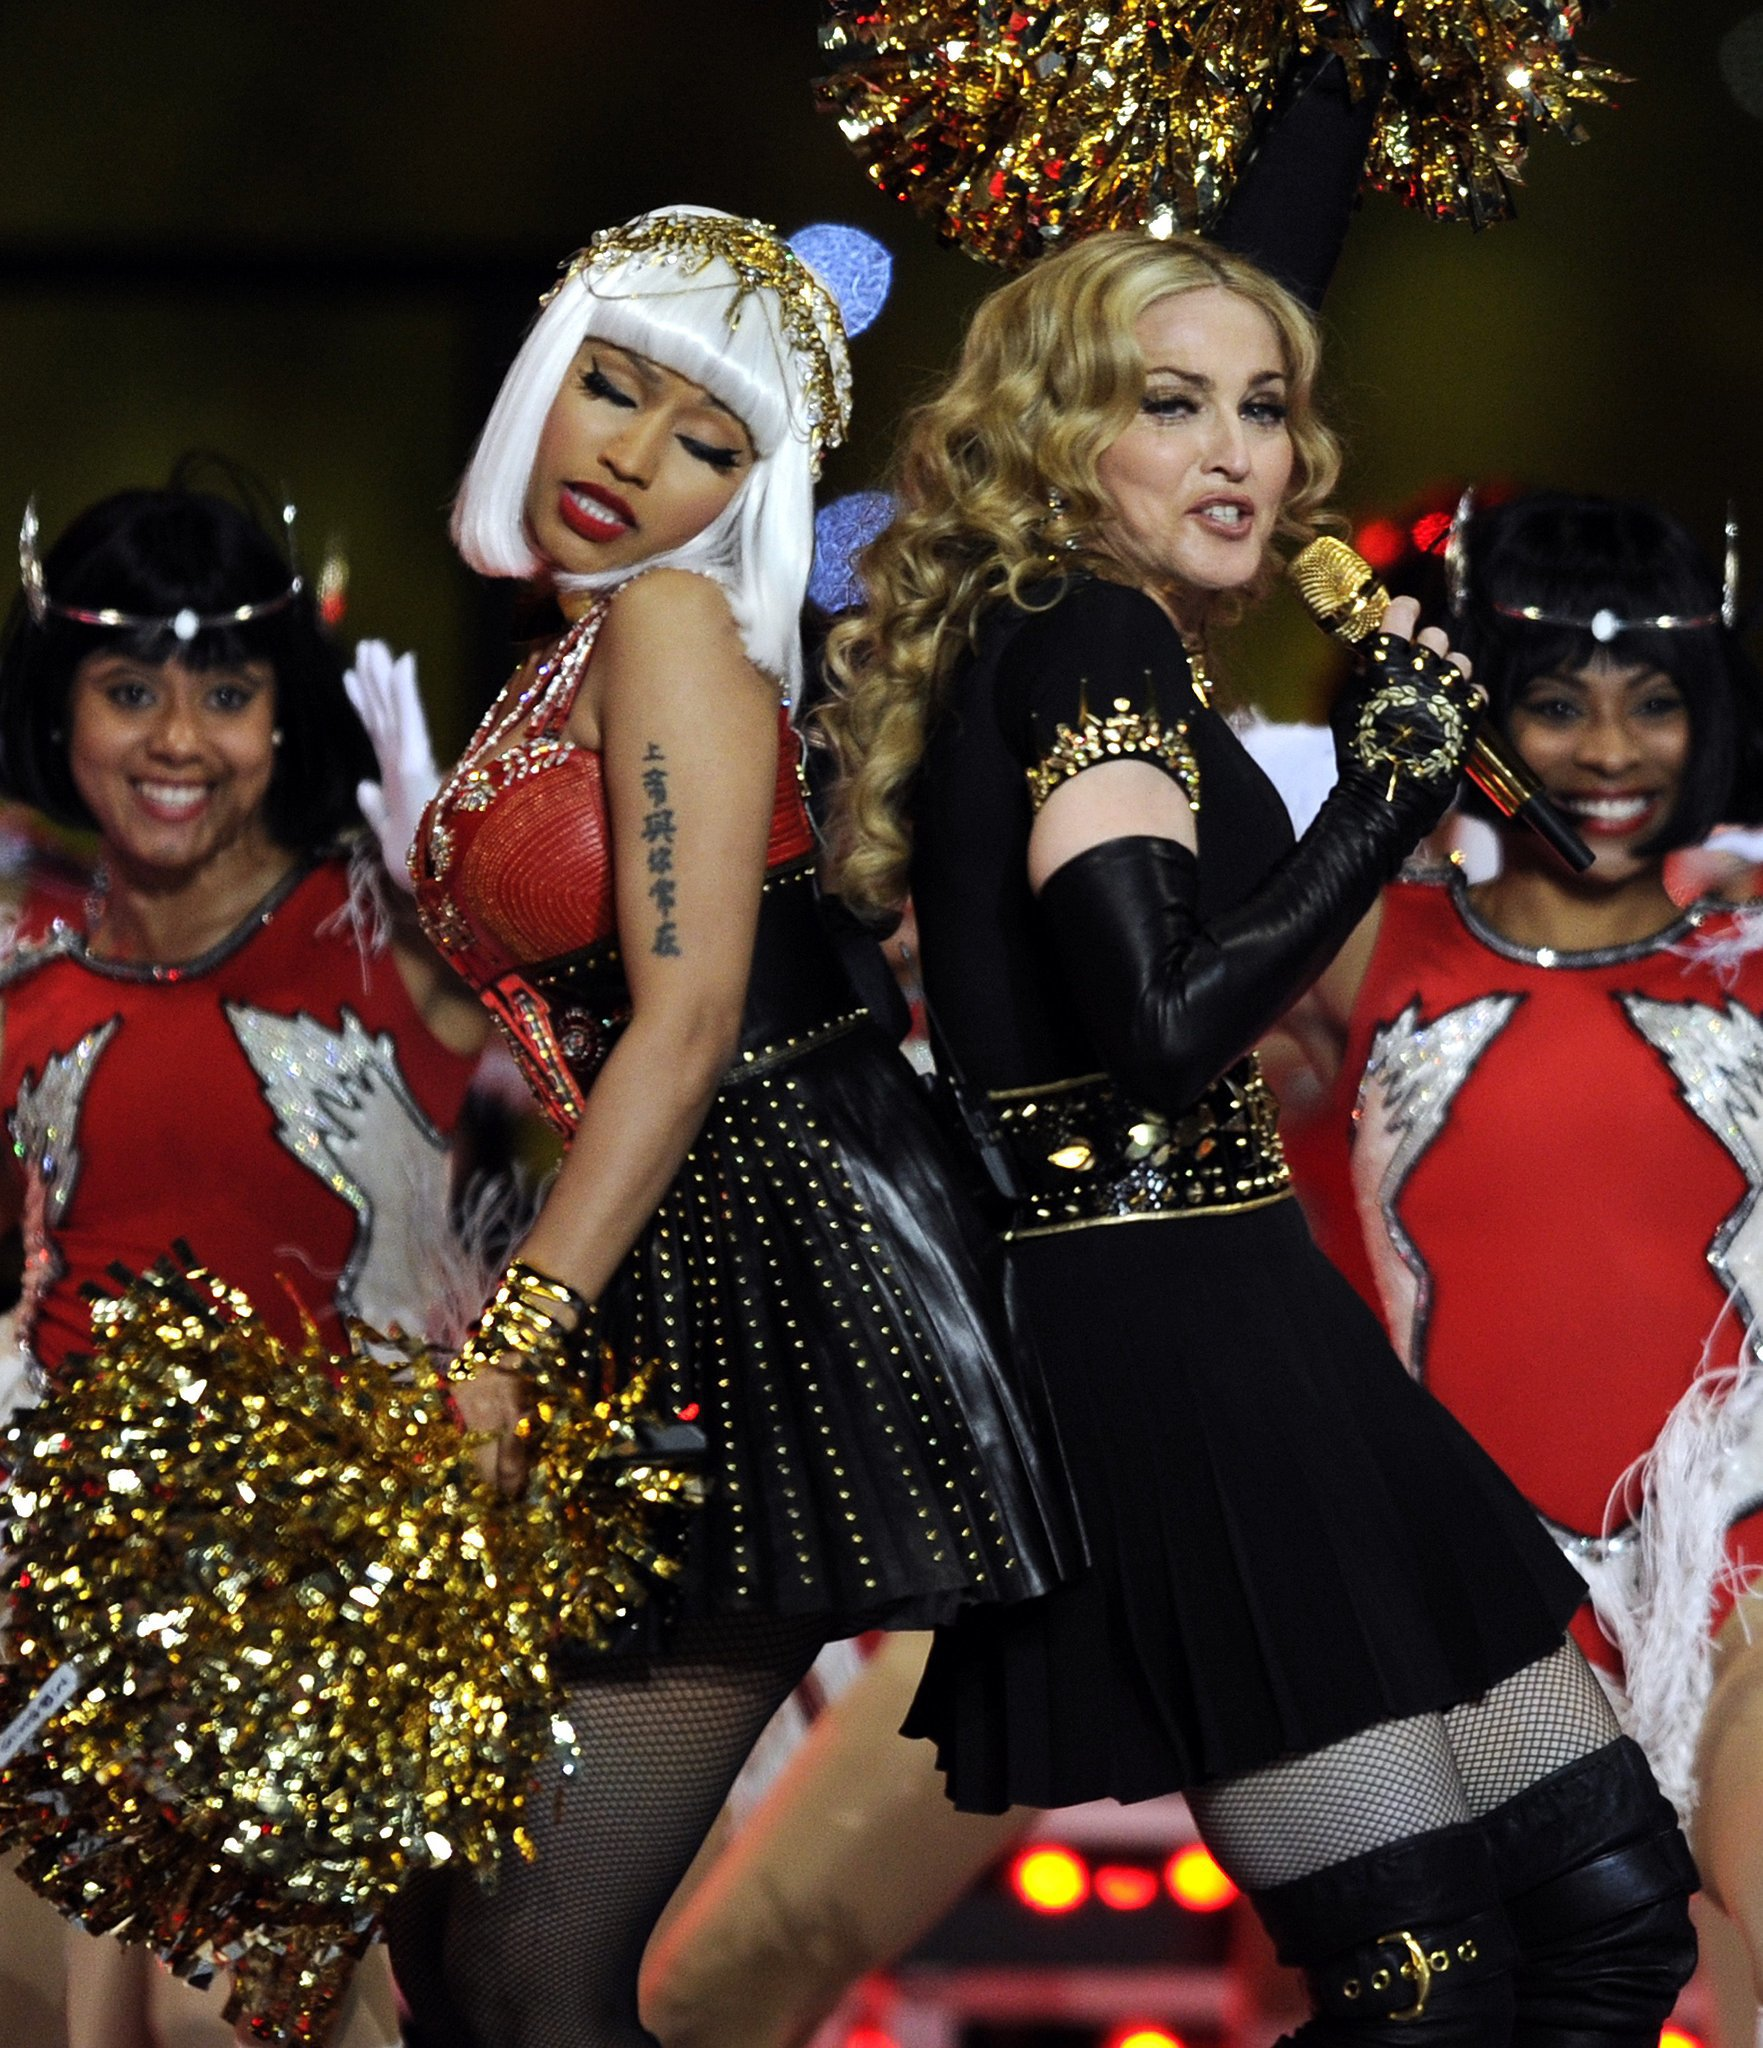 Super Bowl 2012 performers Madonna and Nicki Minaj danced together.